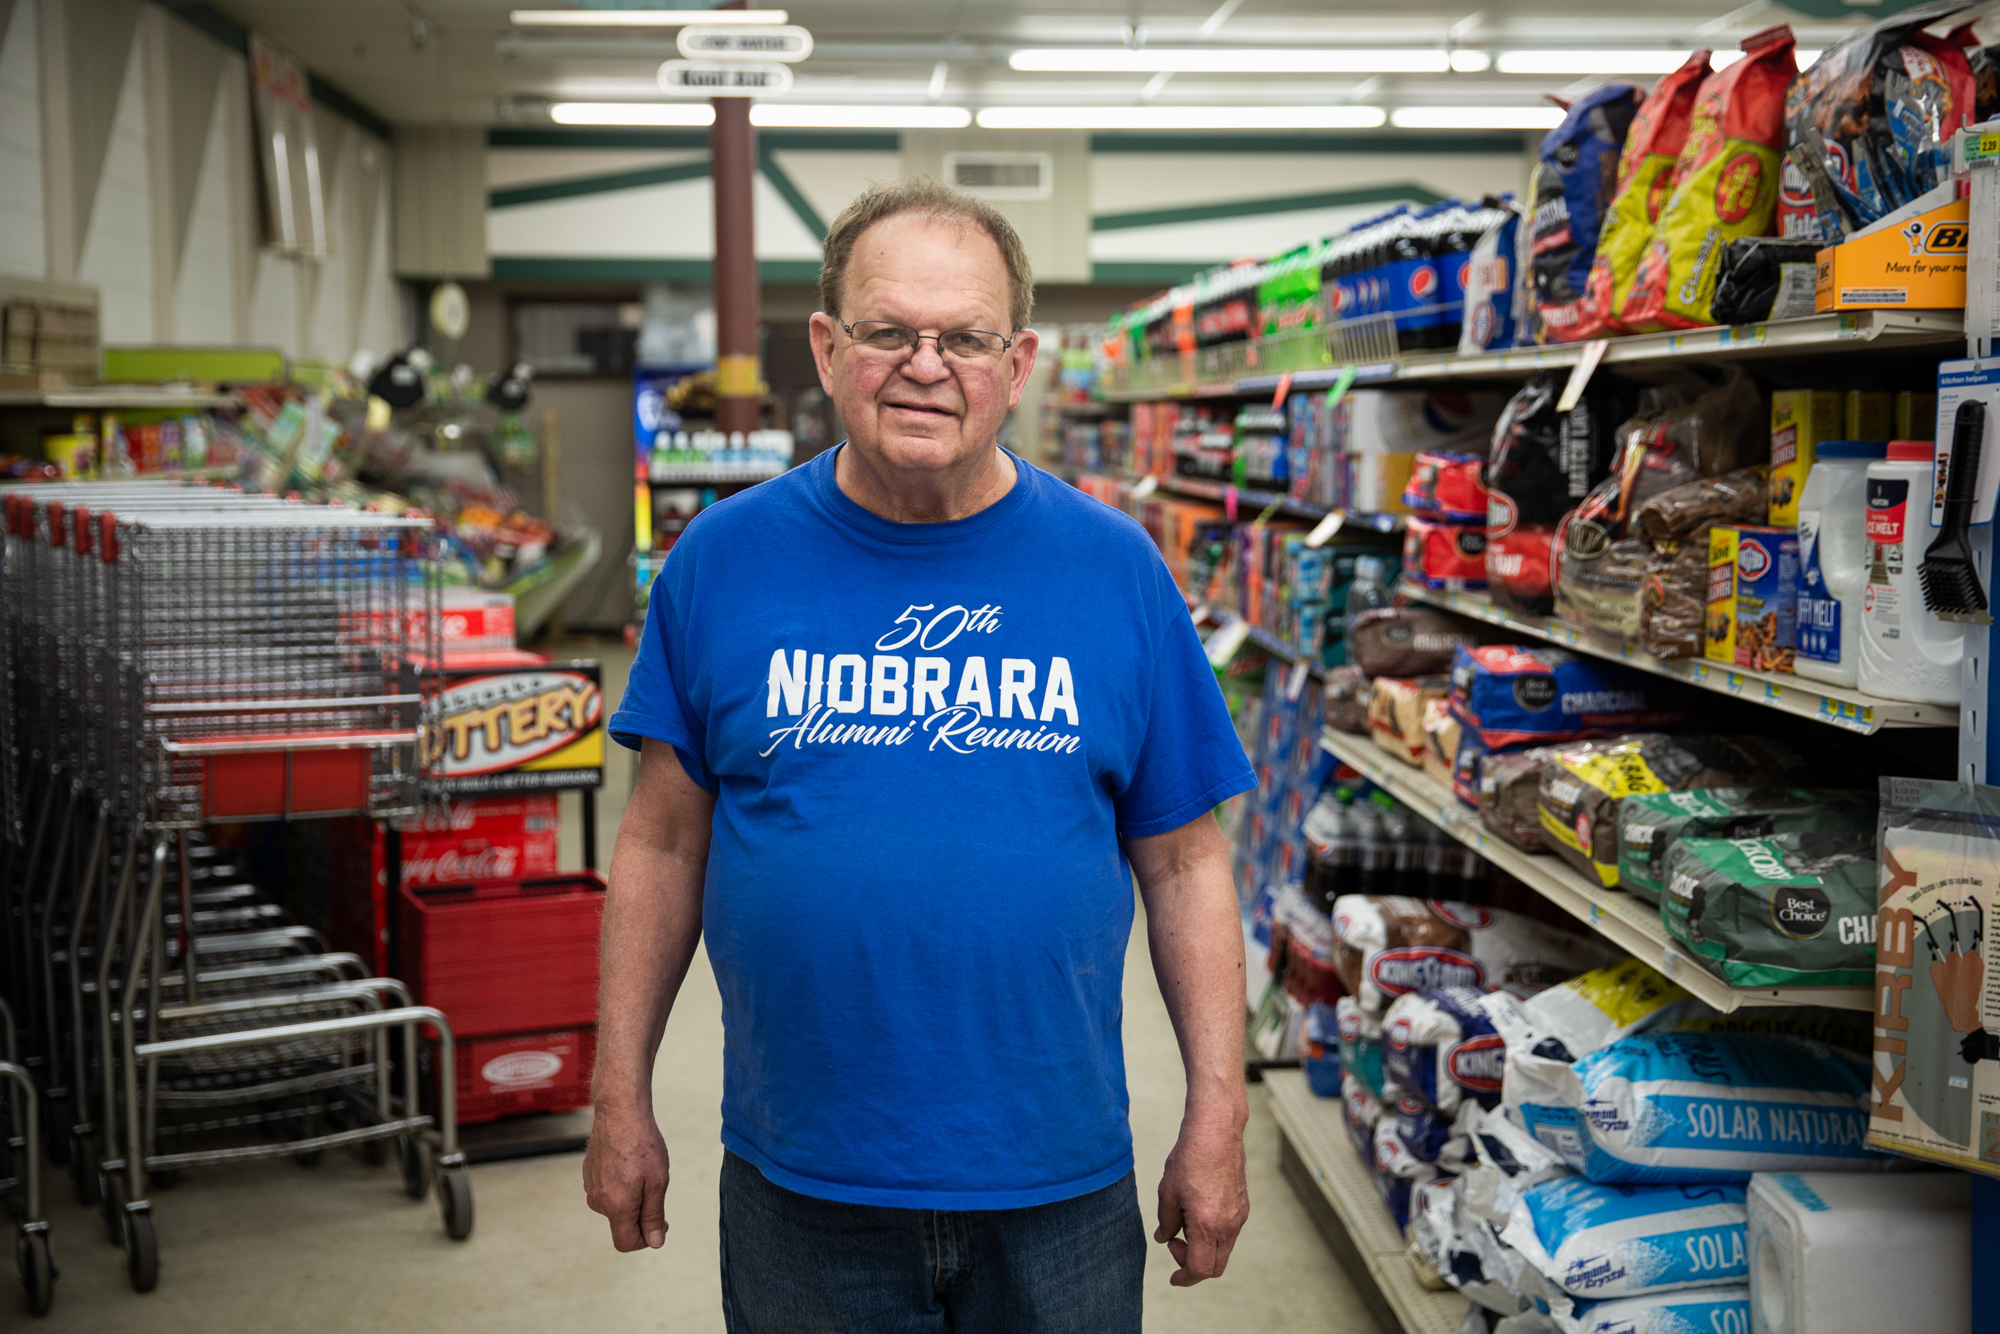 Ken Farnik - Ken Farnik says Farnik's Market in Niobrara, Nebraska, is struggling to stay in business since the flooding in March, due to fewer customers. Niobrara relies on  hunters and visitors to nearby Niobrara State Park to support its economy. (Anya Magnuson/News21)